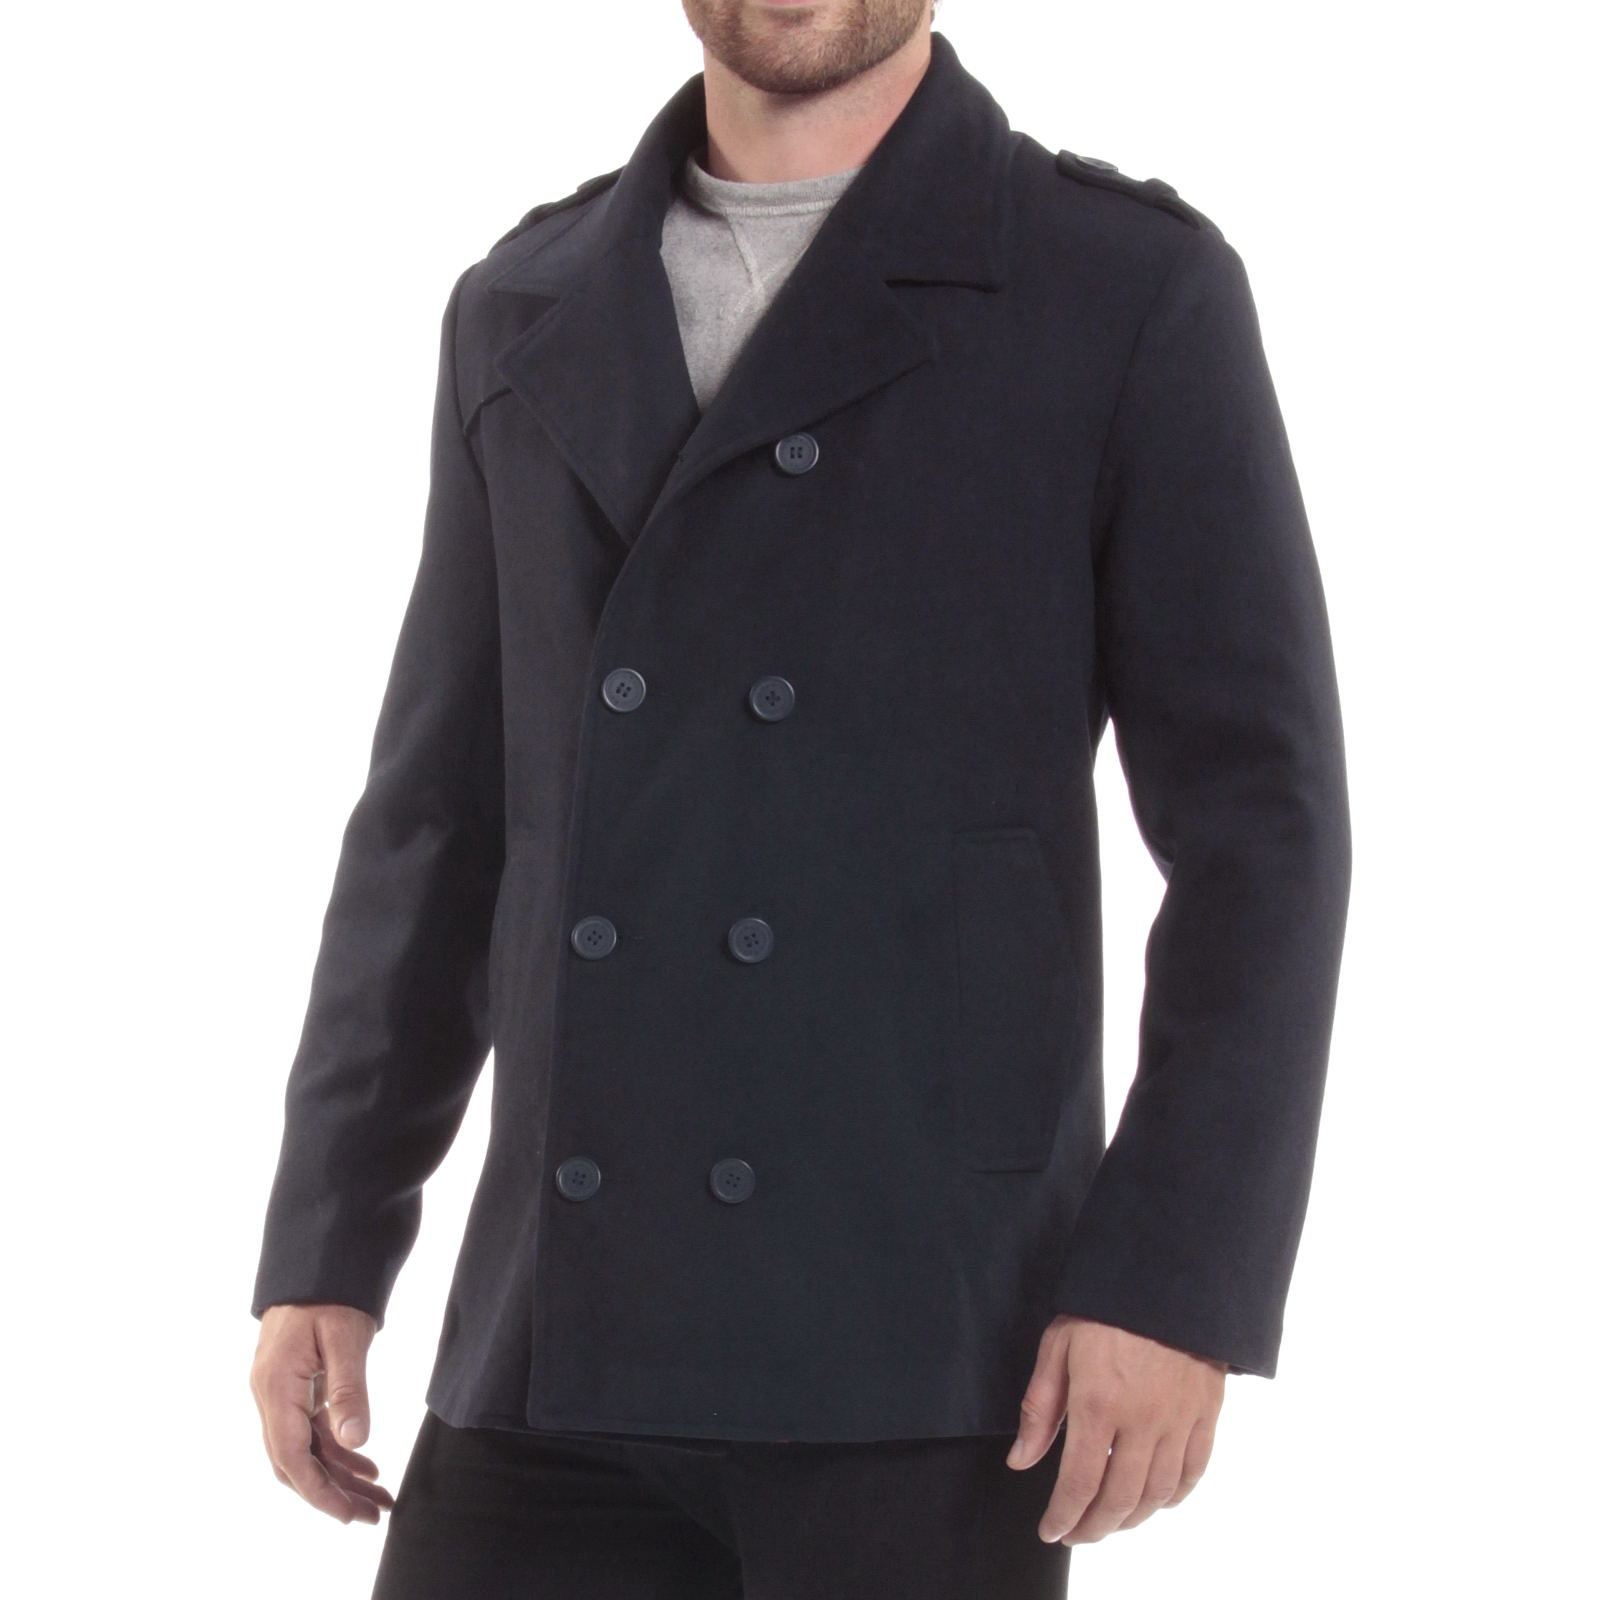 Custom Made Pea Coats to fit you. A custom pea coat for men is an important piece in men's wardrobe in winter. Design your men peacoat and we tailor it to your measurements. Get free shipping on .